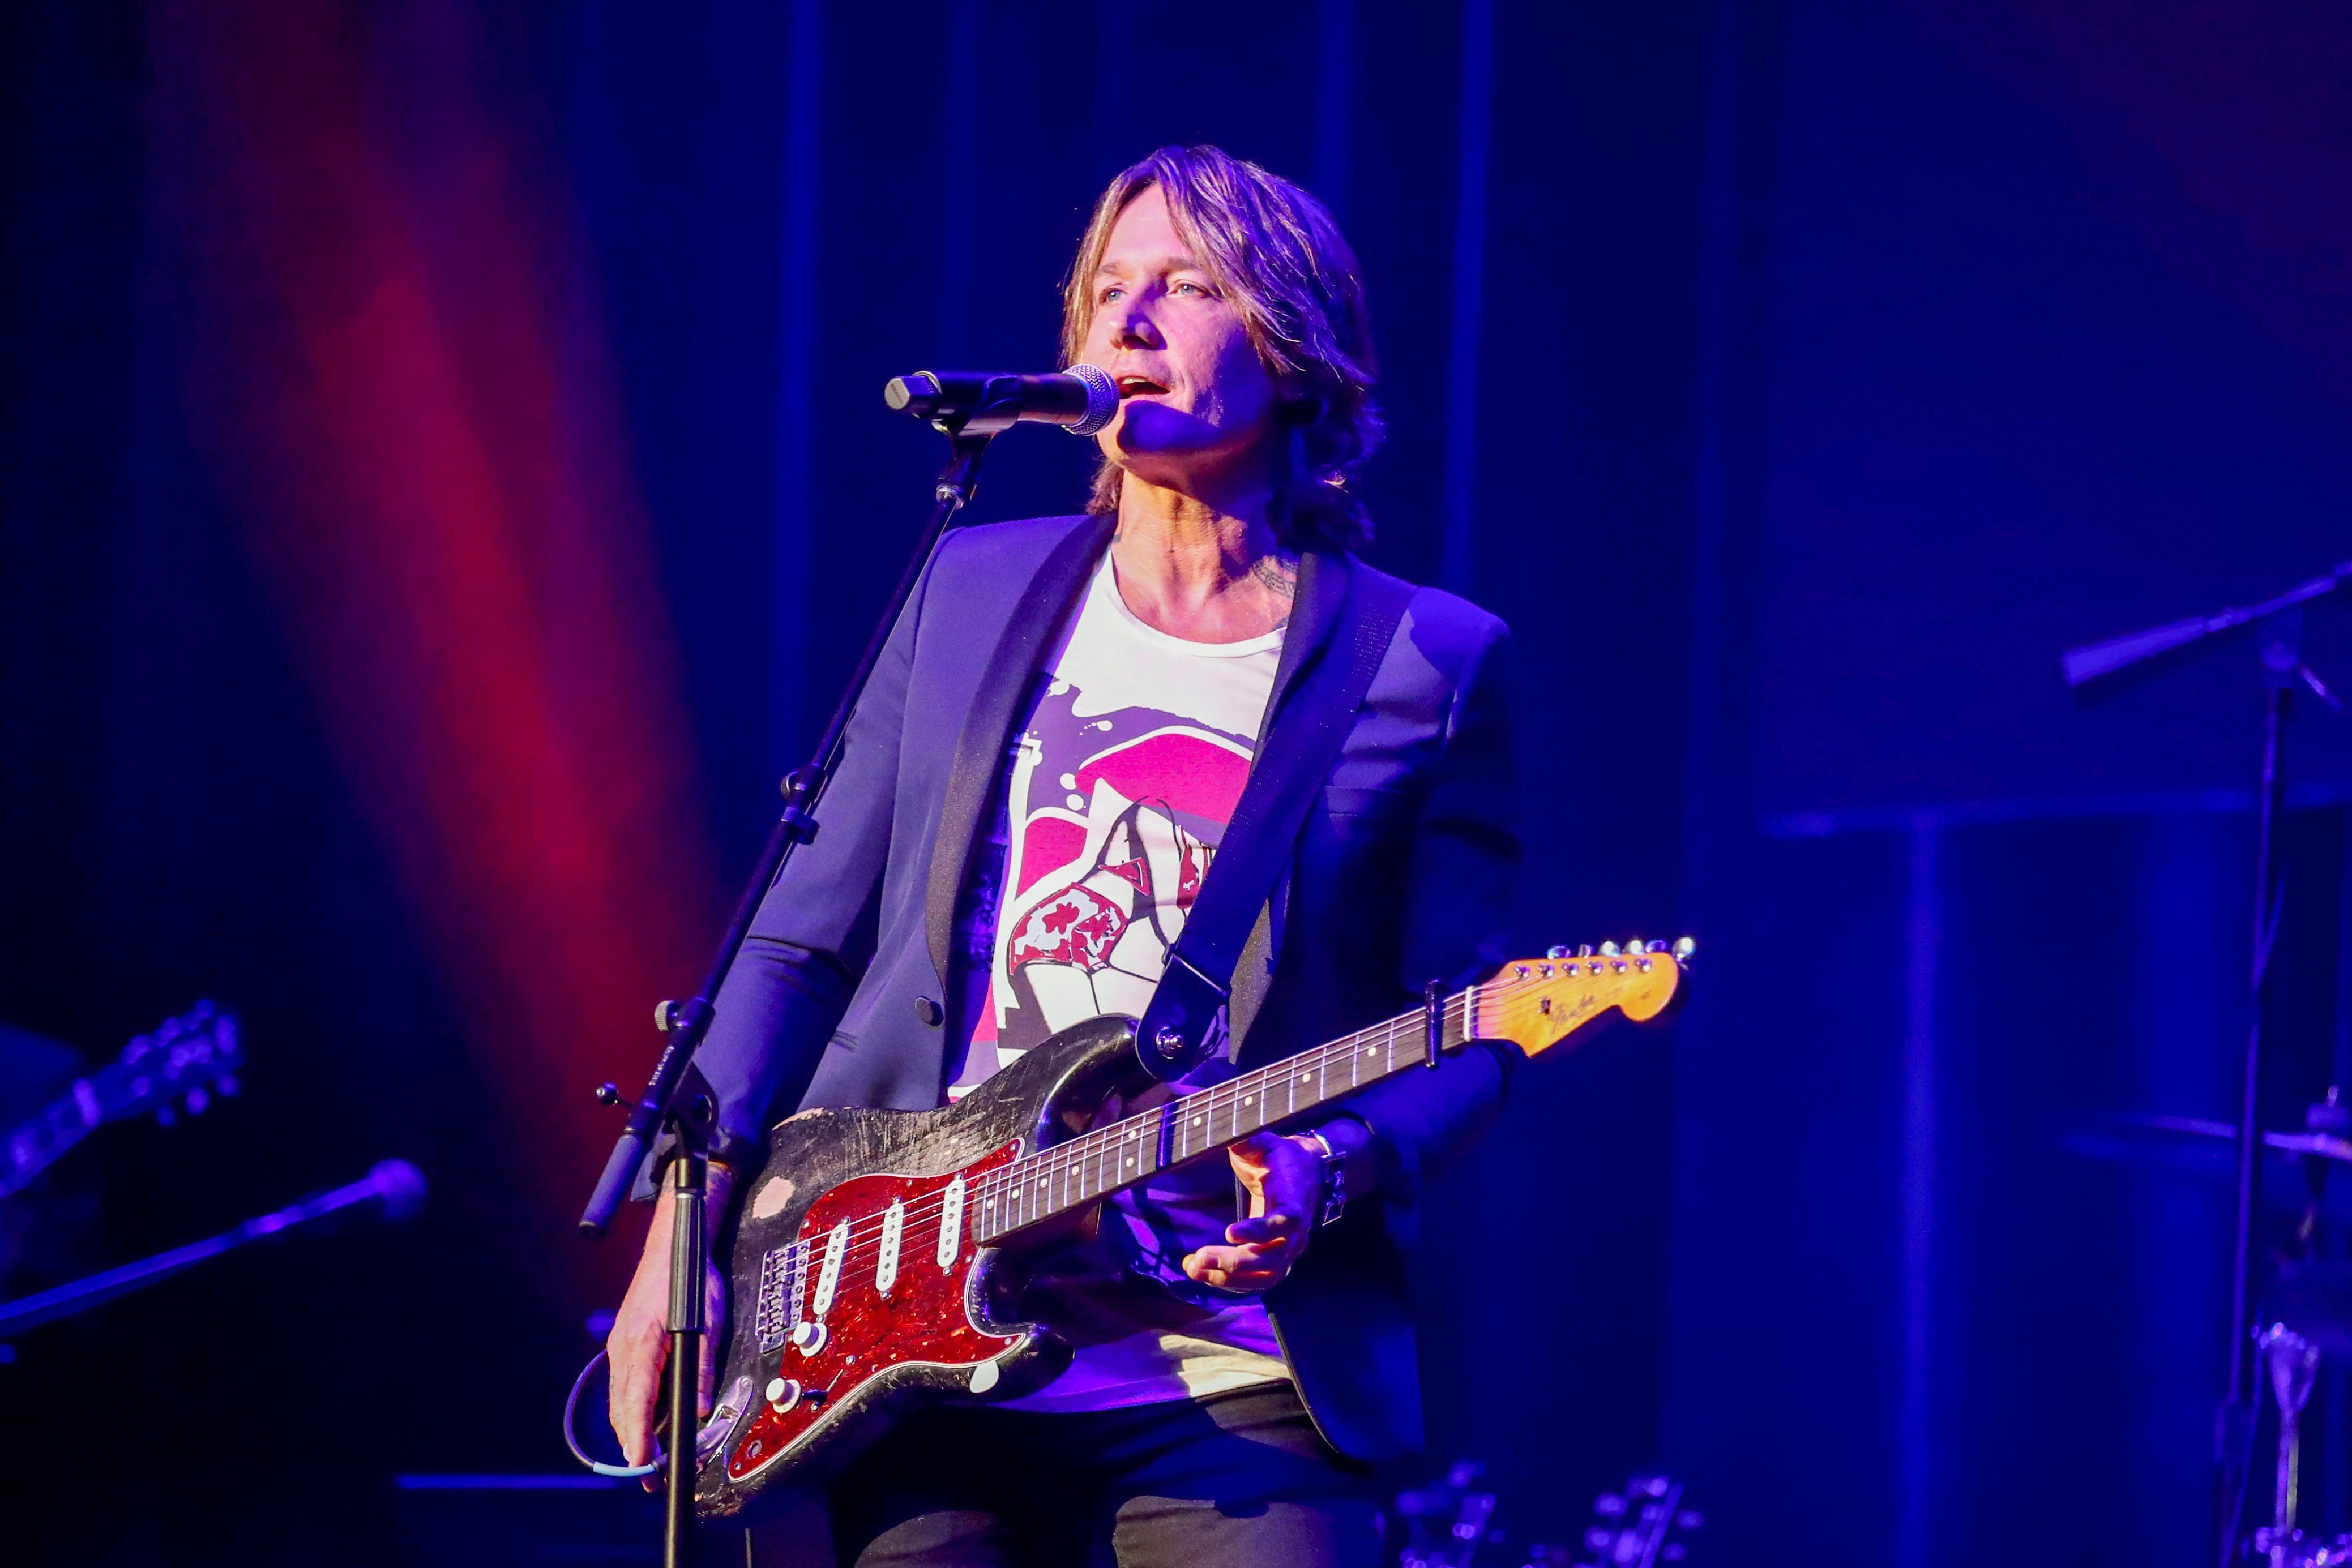 Keith Urban performs at the 13th annual ACM Honors at the Ryman Auditorium, in Nashville, Tenn13th Annual ACM Honors - Show, Nashville, USA - 21 Aug 2019